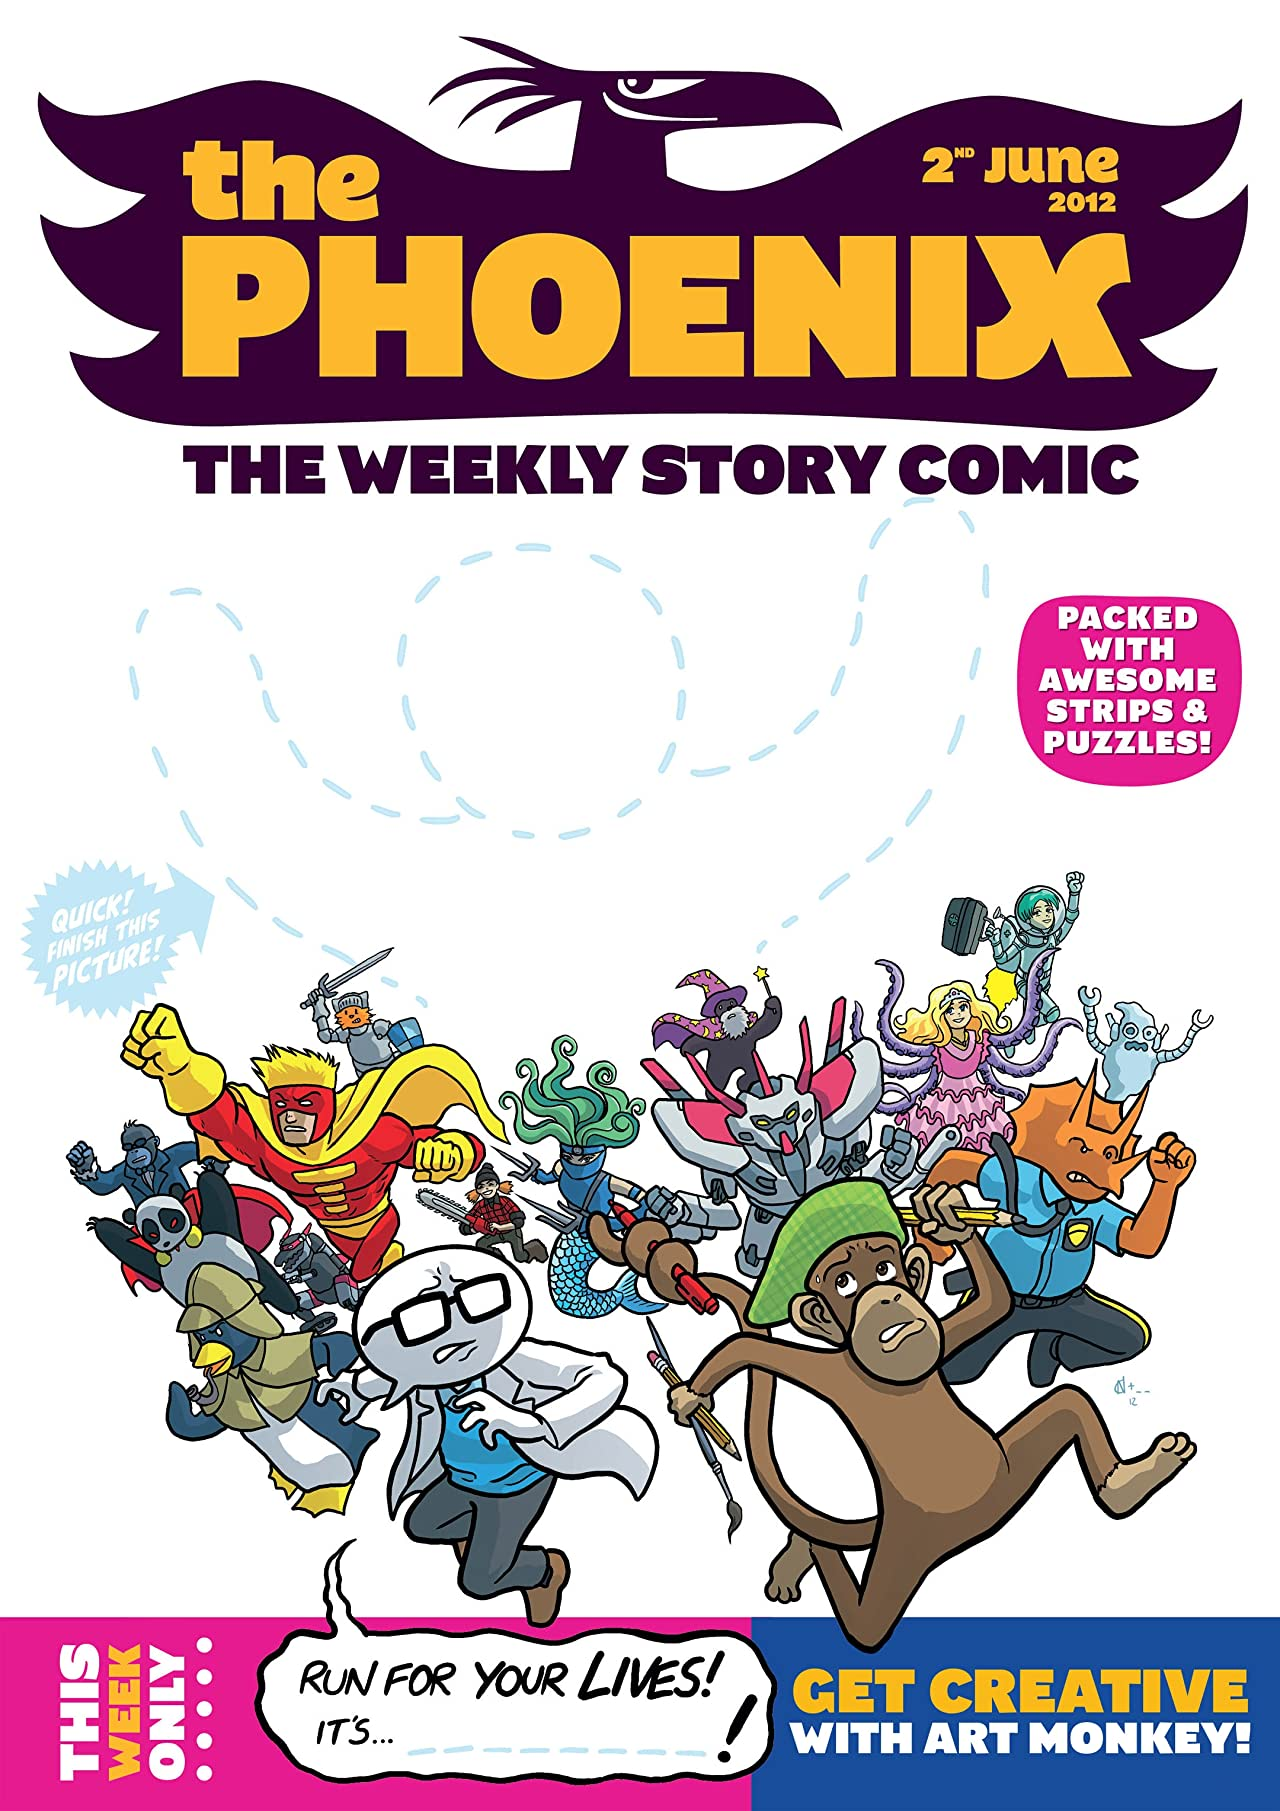 The Phoenix #22: The Weekly Story Comic